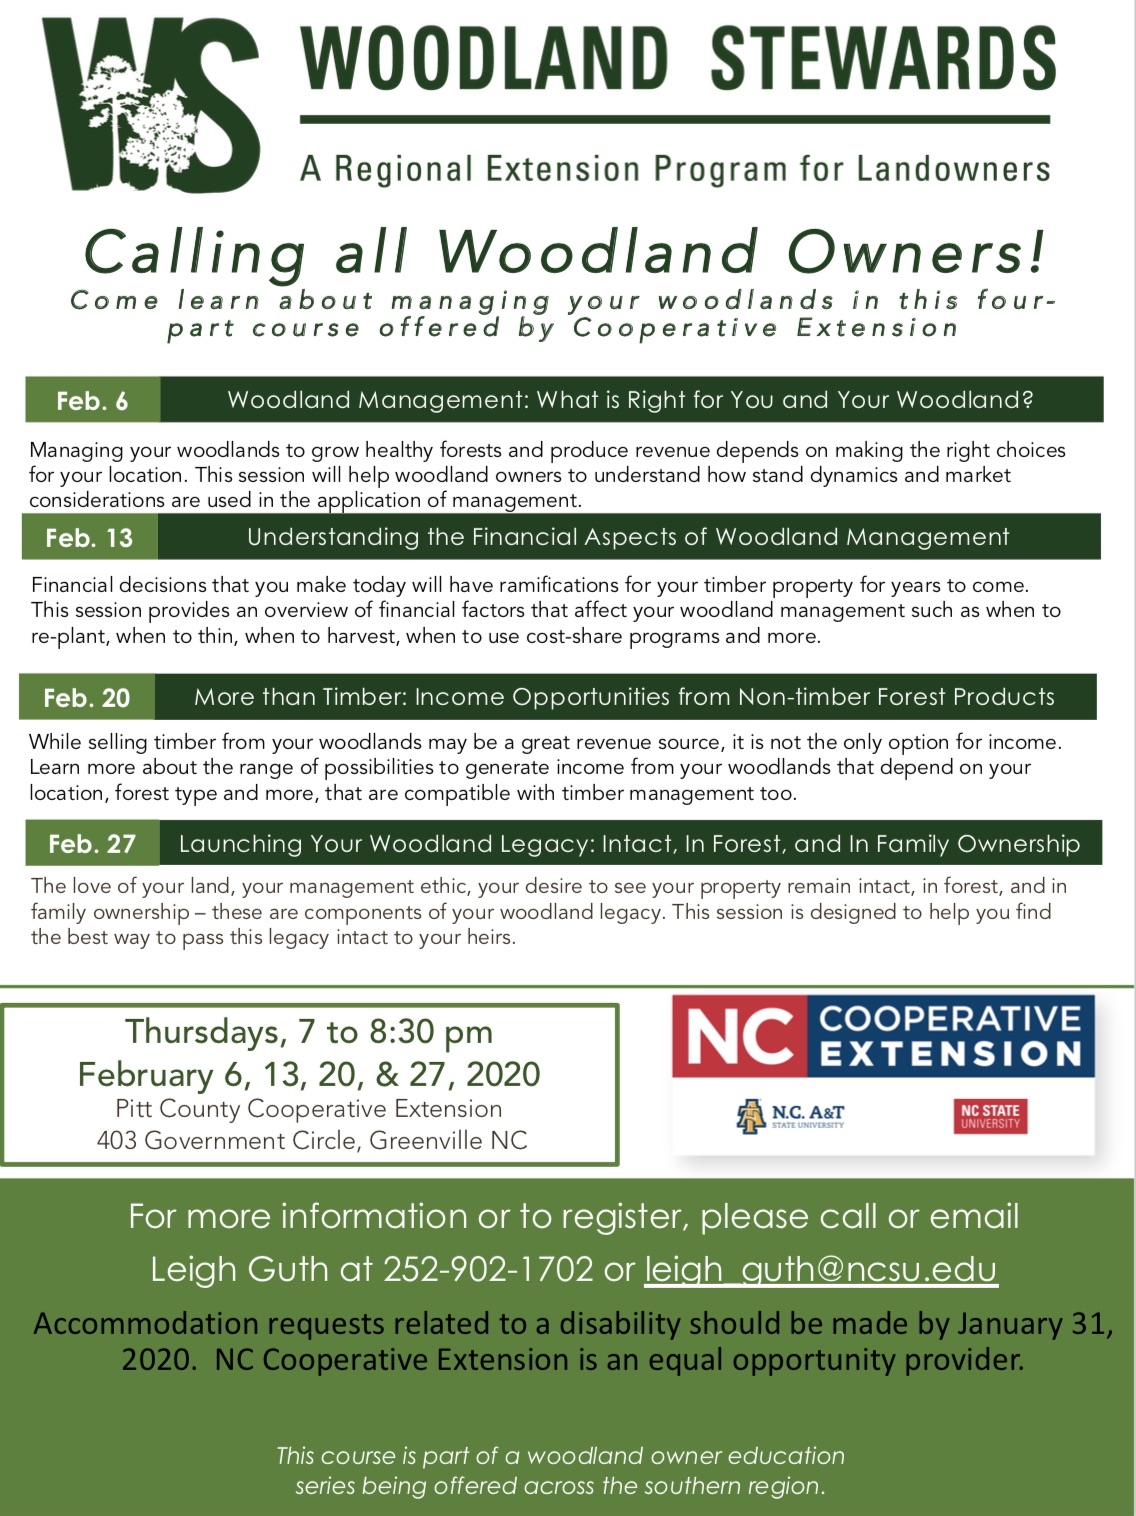 Woodlands Stewards Series flyer image